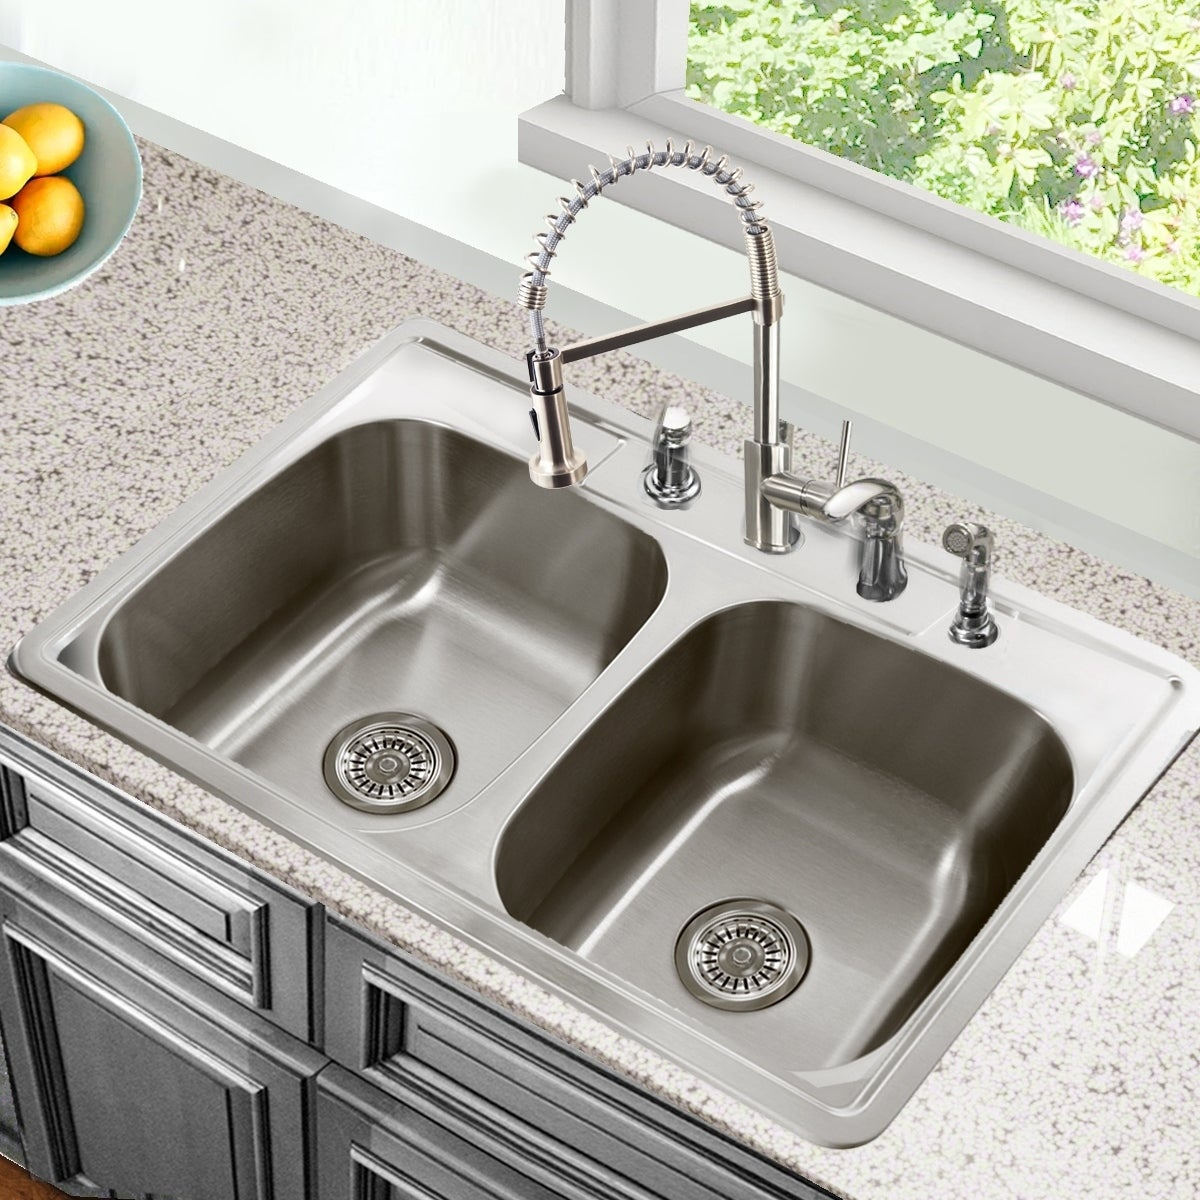 Shop 33 Inch Drop In Stainless Steel Double Bowl Kitchen Sink   33